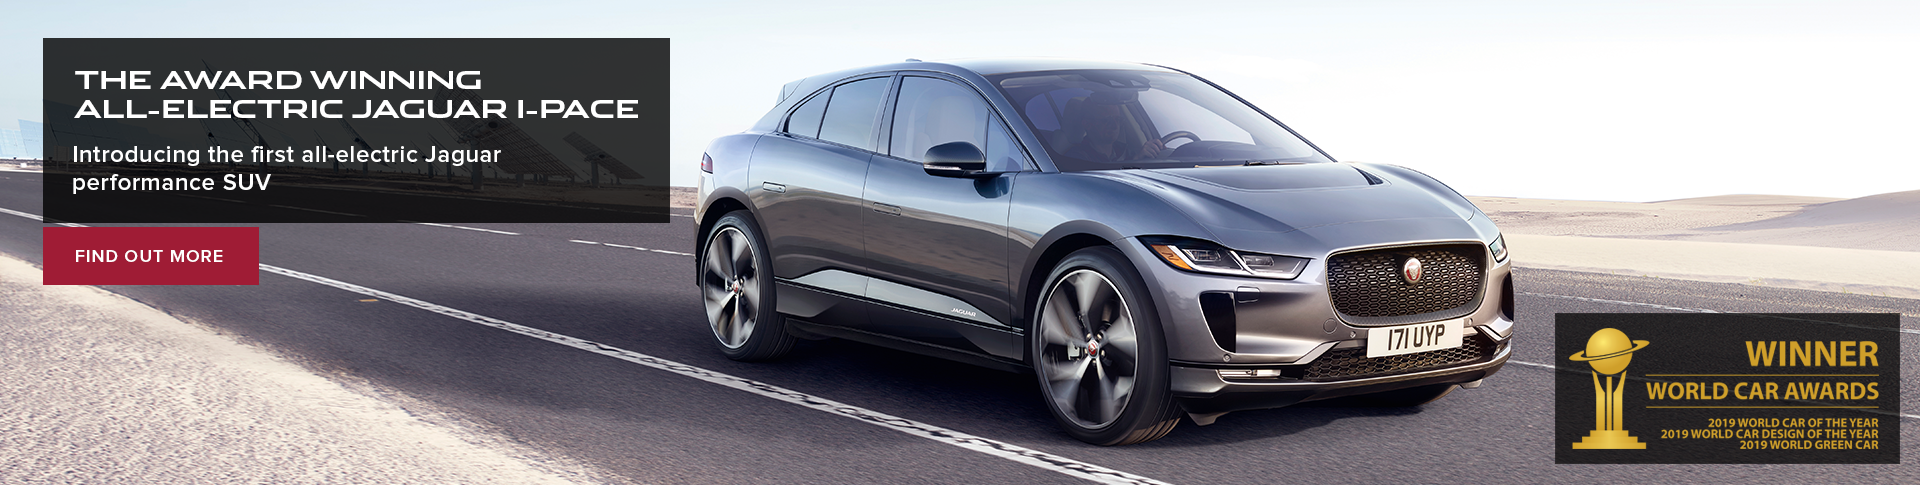 The award winning all-electric I-PACE